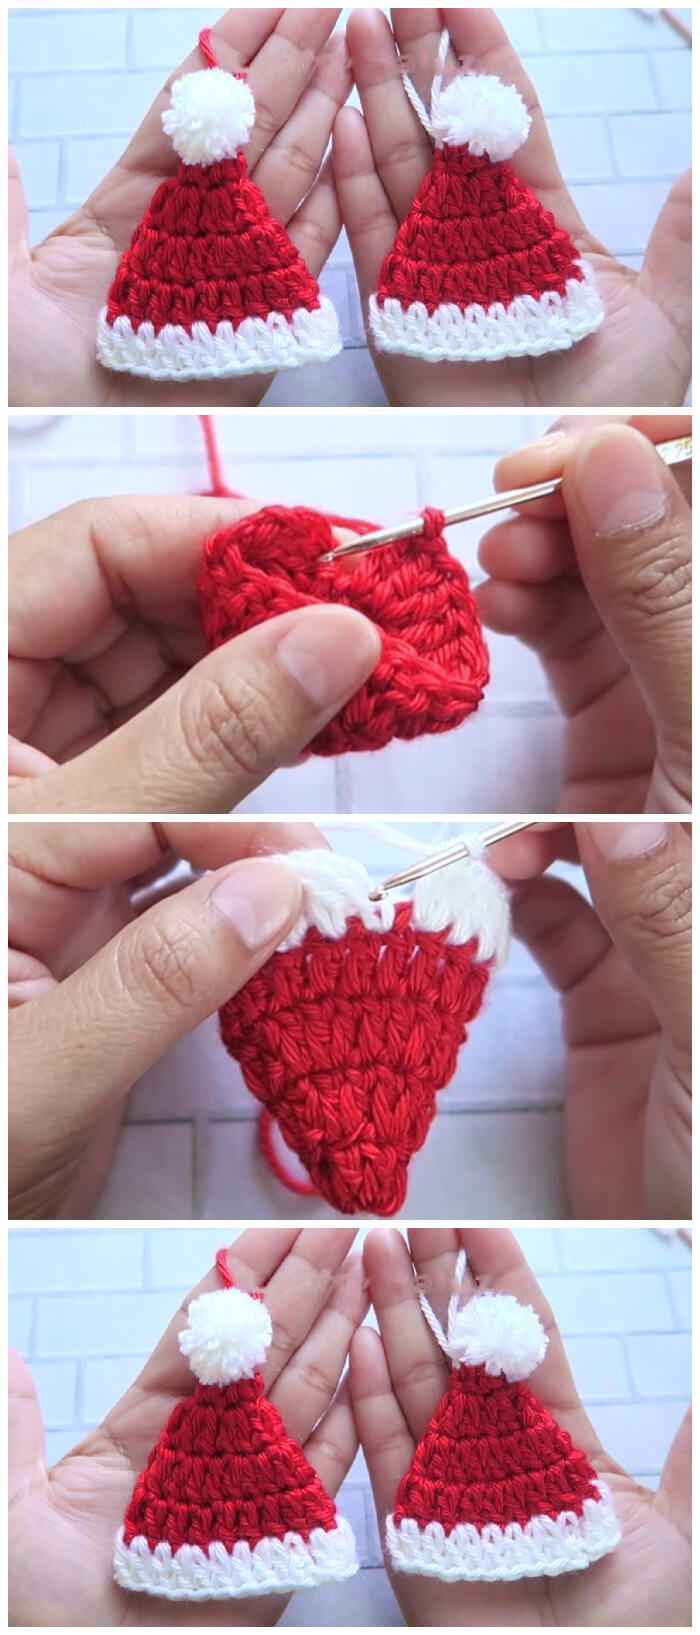 Santa Hat Tutorial - Learn to Crochet - Crochet Kingdom